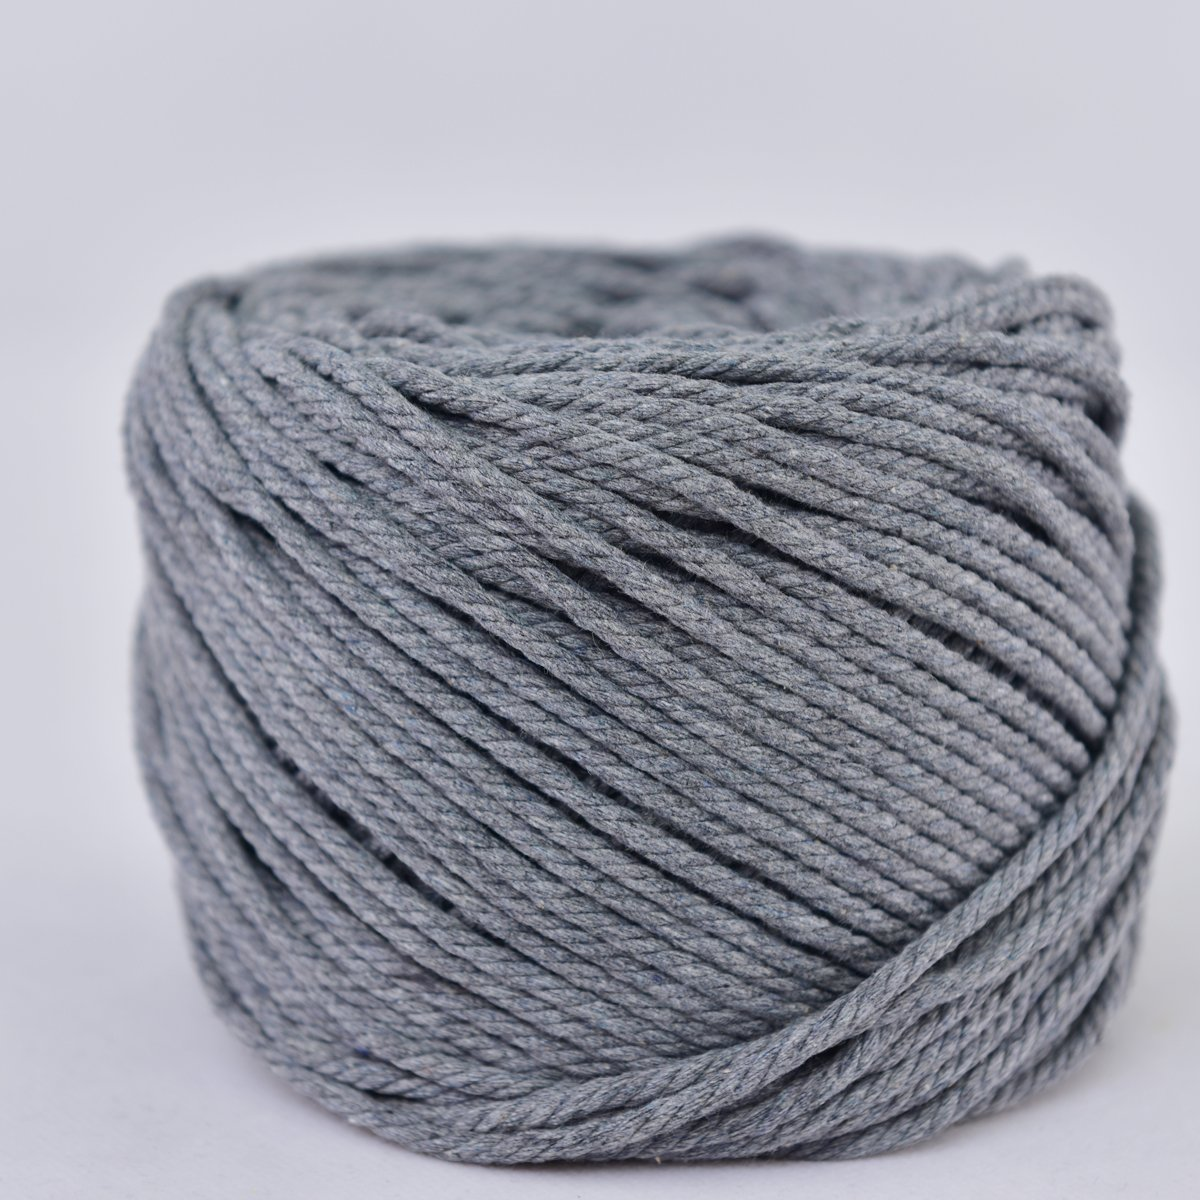 Gray, 4mm x 100m Handmade Decorations Natural Cotton Bohemia Macrame DIY Wall Hanging Plant Hanger Craft Making Knitting Cord Rope Gray Color Macram/é Cord About 109 yd